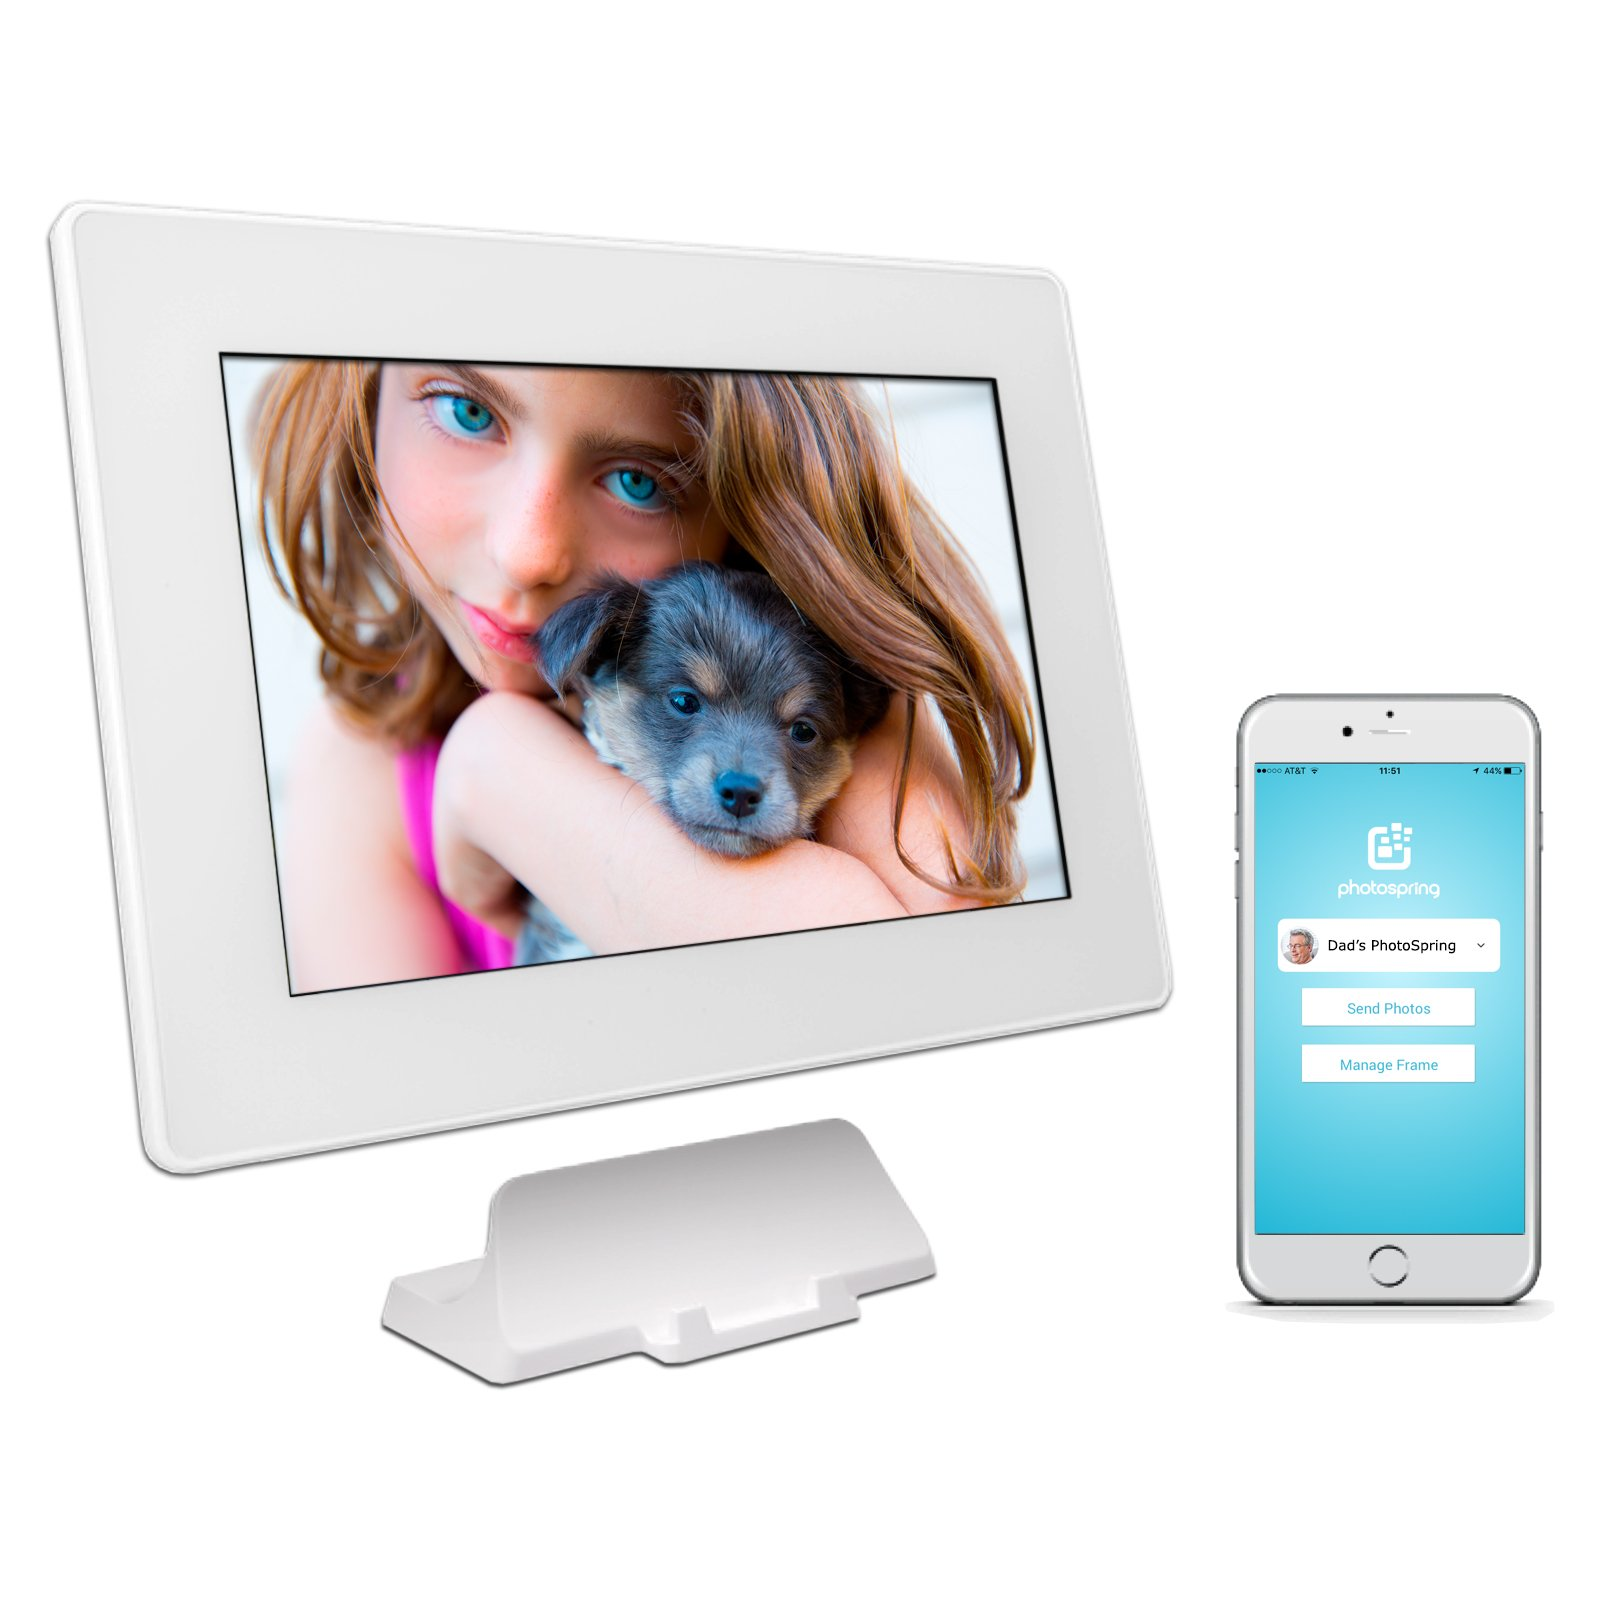 PhotoSpring (32GB) 10-Inch IPS, WiFi, Touchscreen, Battery, iPhone & Android App, Photo & Video, Picture Frame (White) 32,000 photo capacity